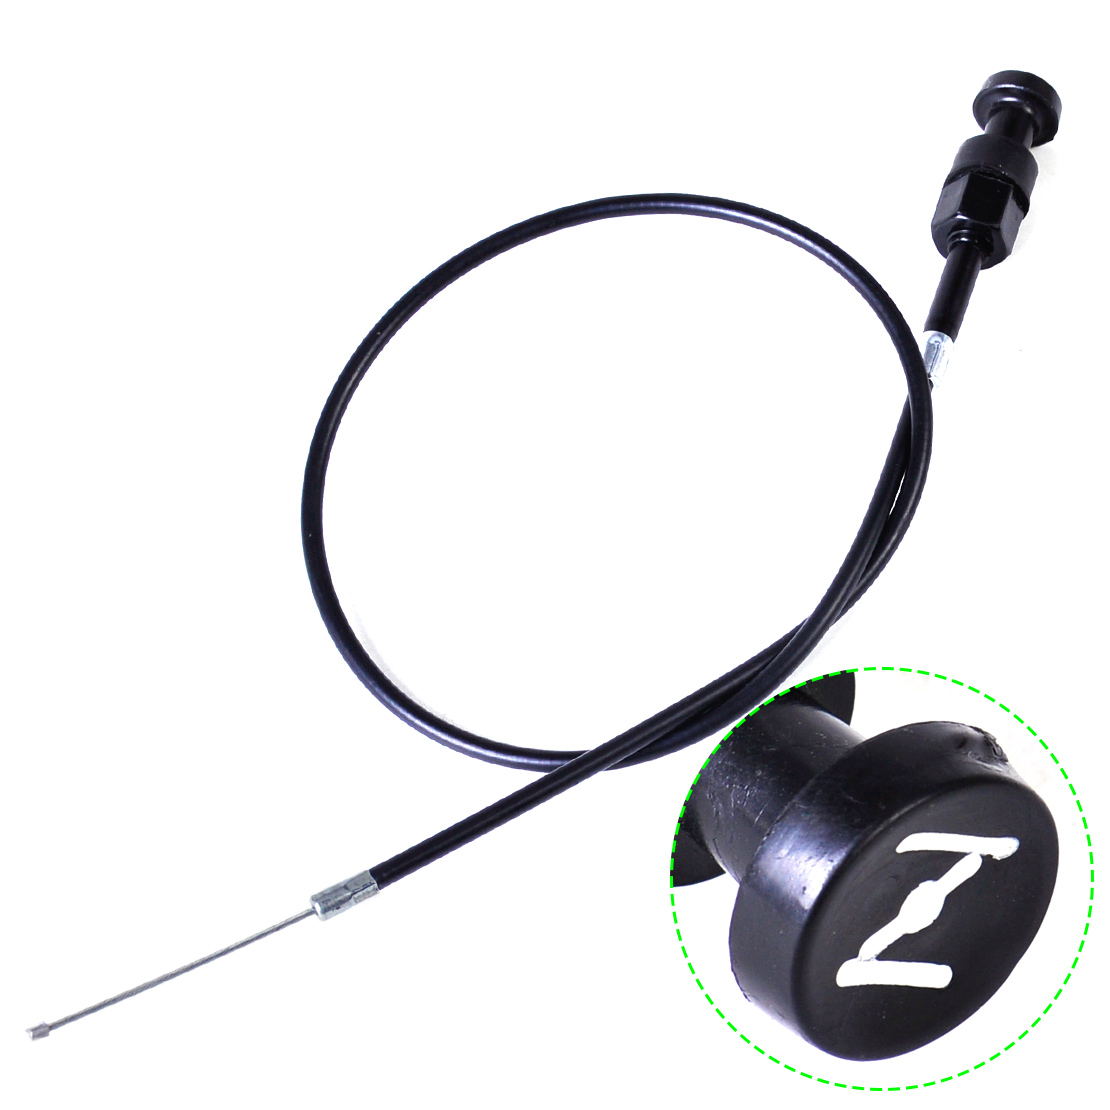 DWCX Motorcycle Pull Choke Cable Throttle Assembly for Yamaha PW50 Pit Dirt Bike 35 83 motorcycle throttle cable for 50cc 150cc dirt bike d030 042